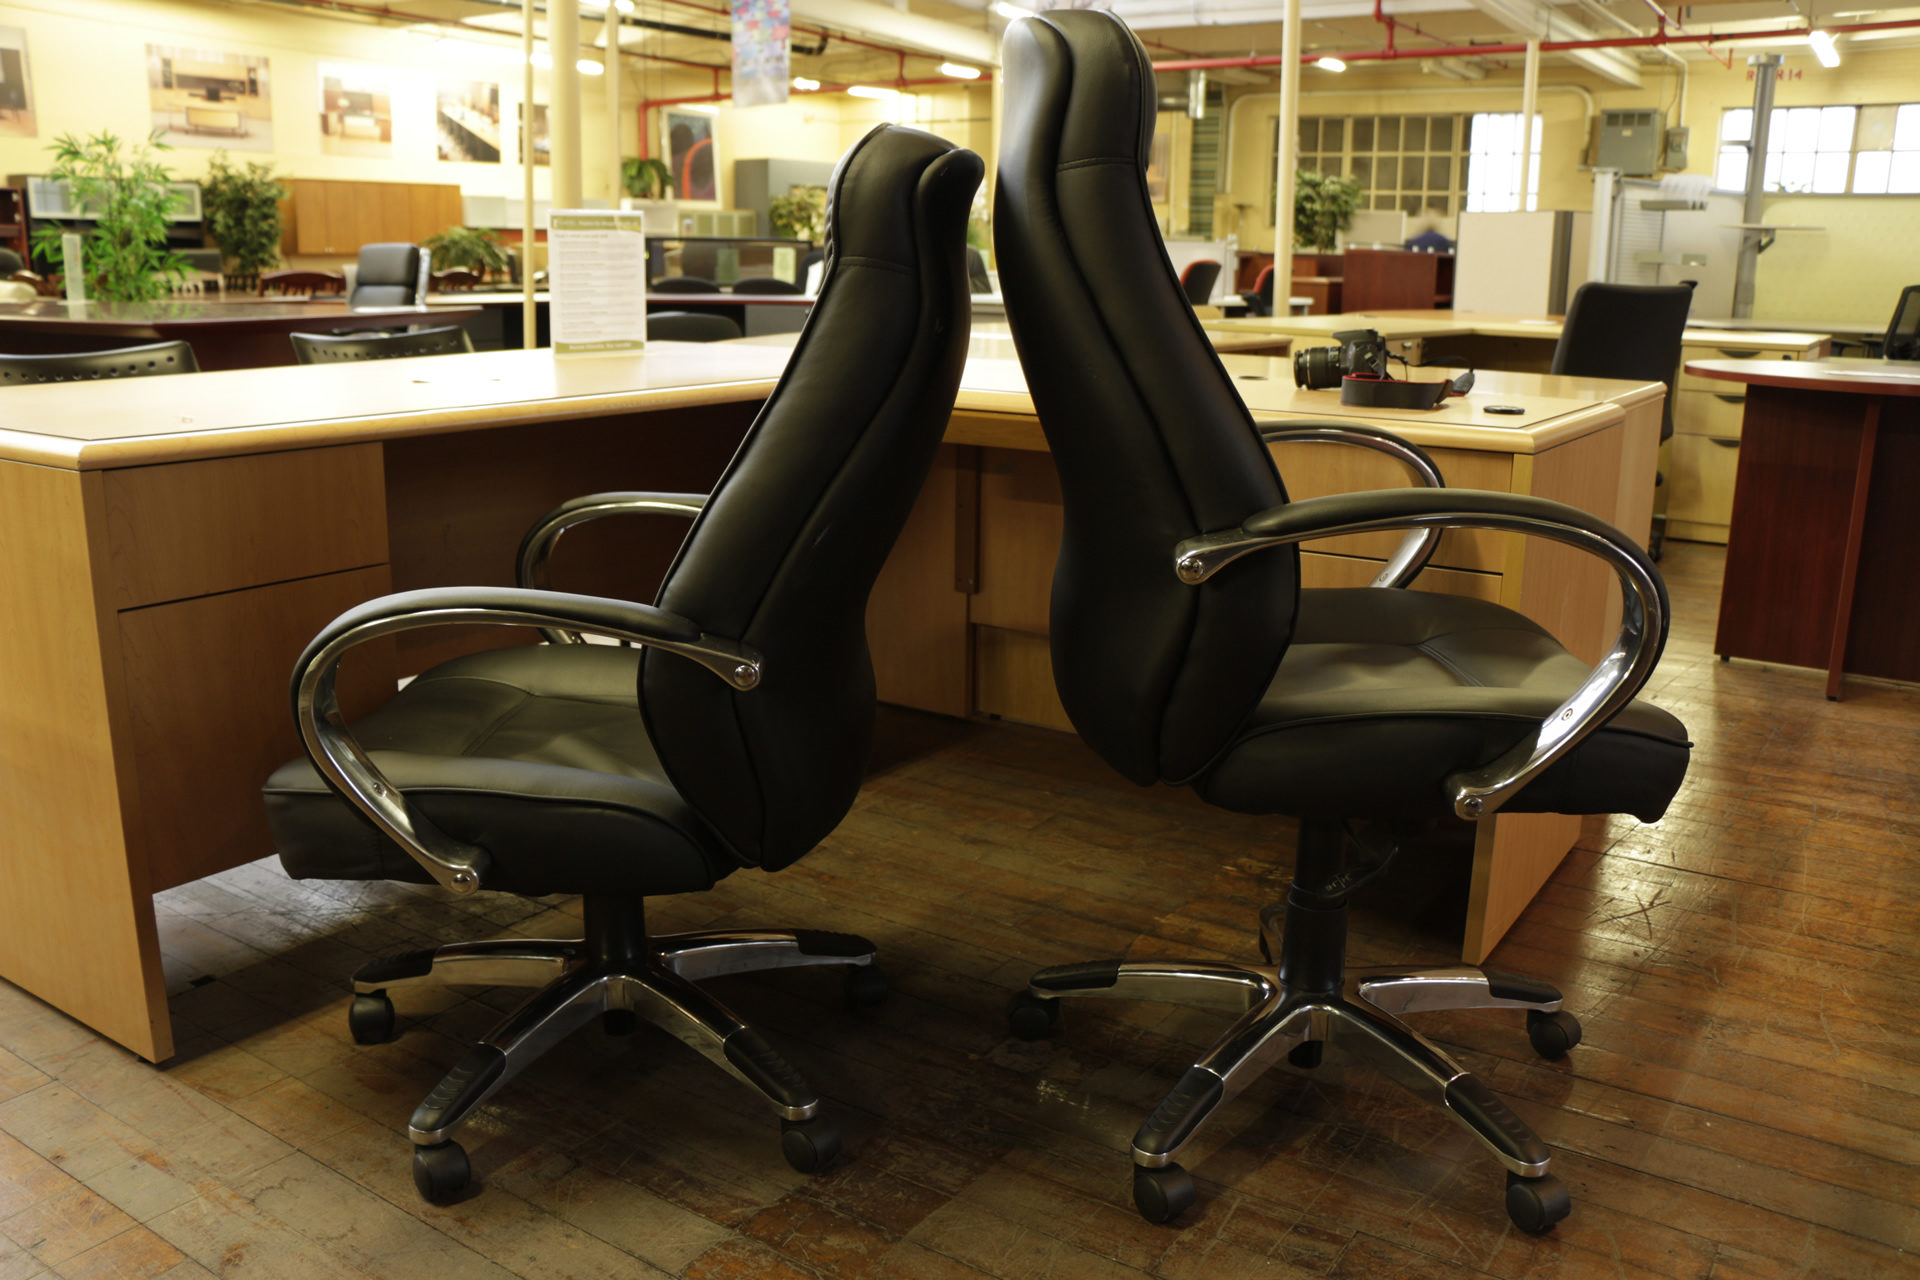 peartreeofficefurniture_peartreeofficefurniture_mg_1793.jpg